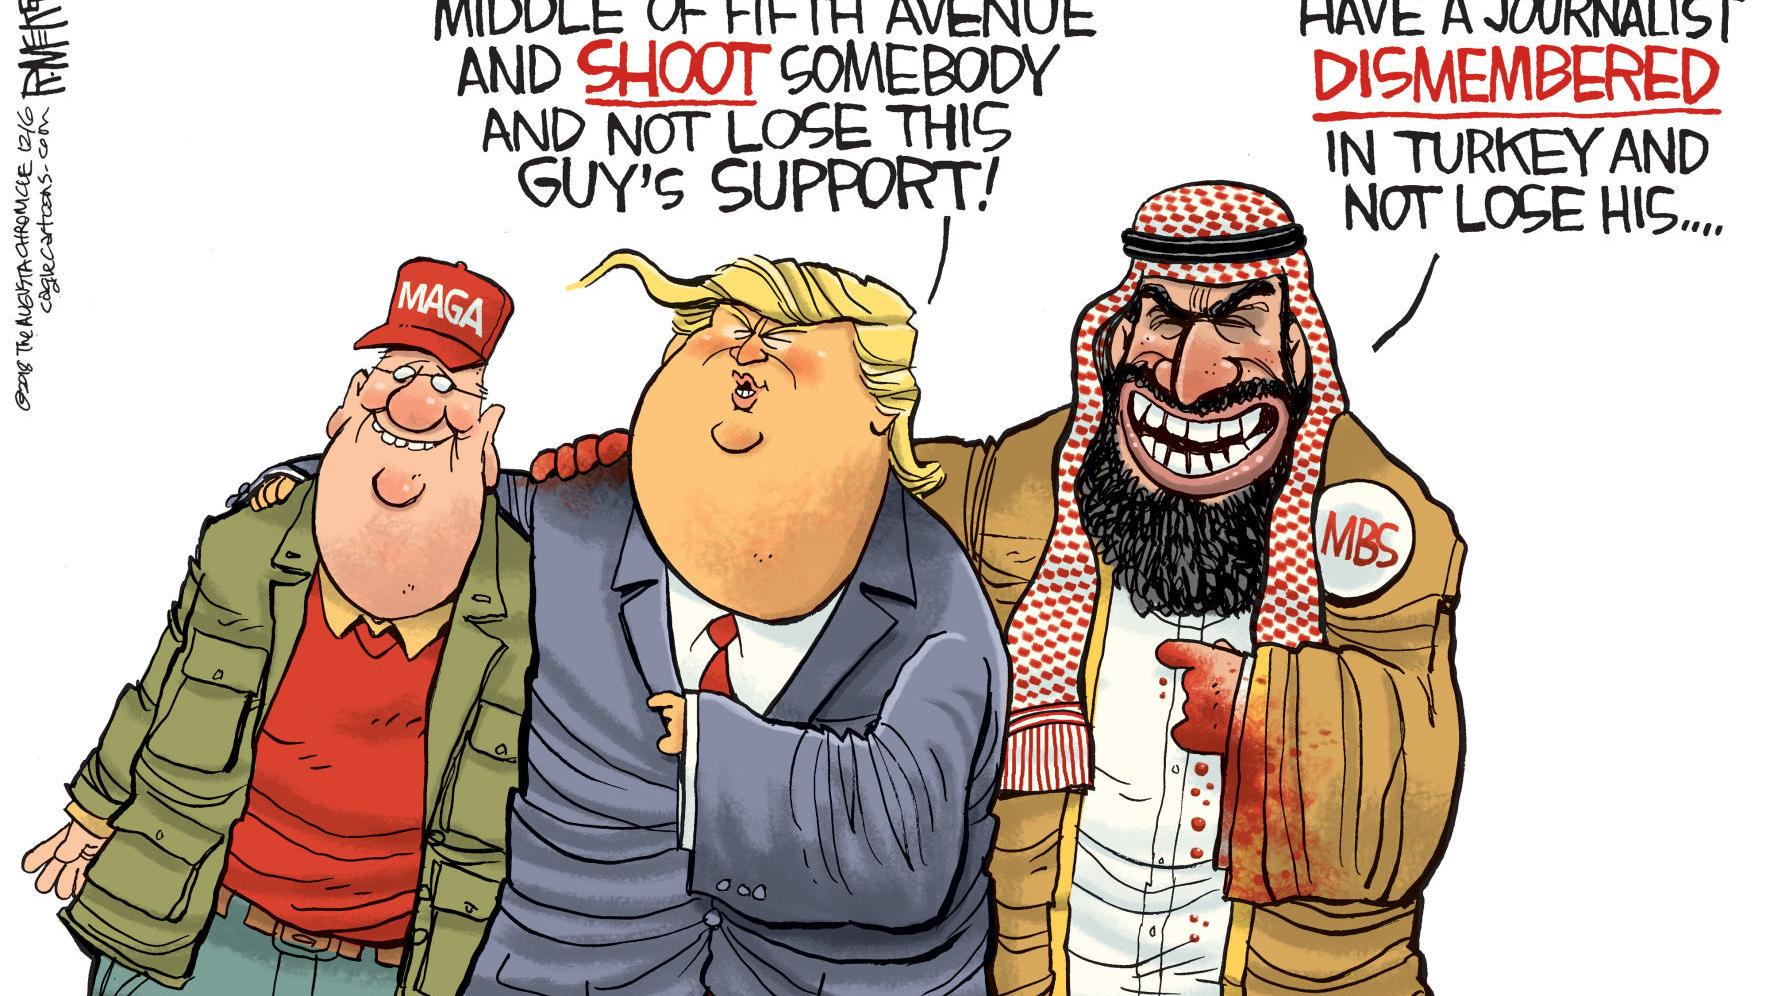 Trump and MSB won't lose their supporters, in Rick McKee's latest political cartoon